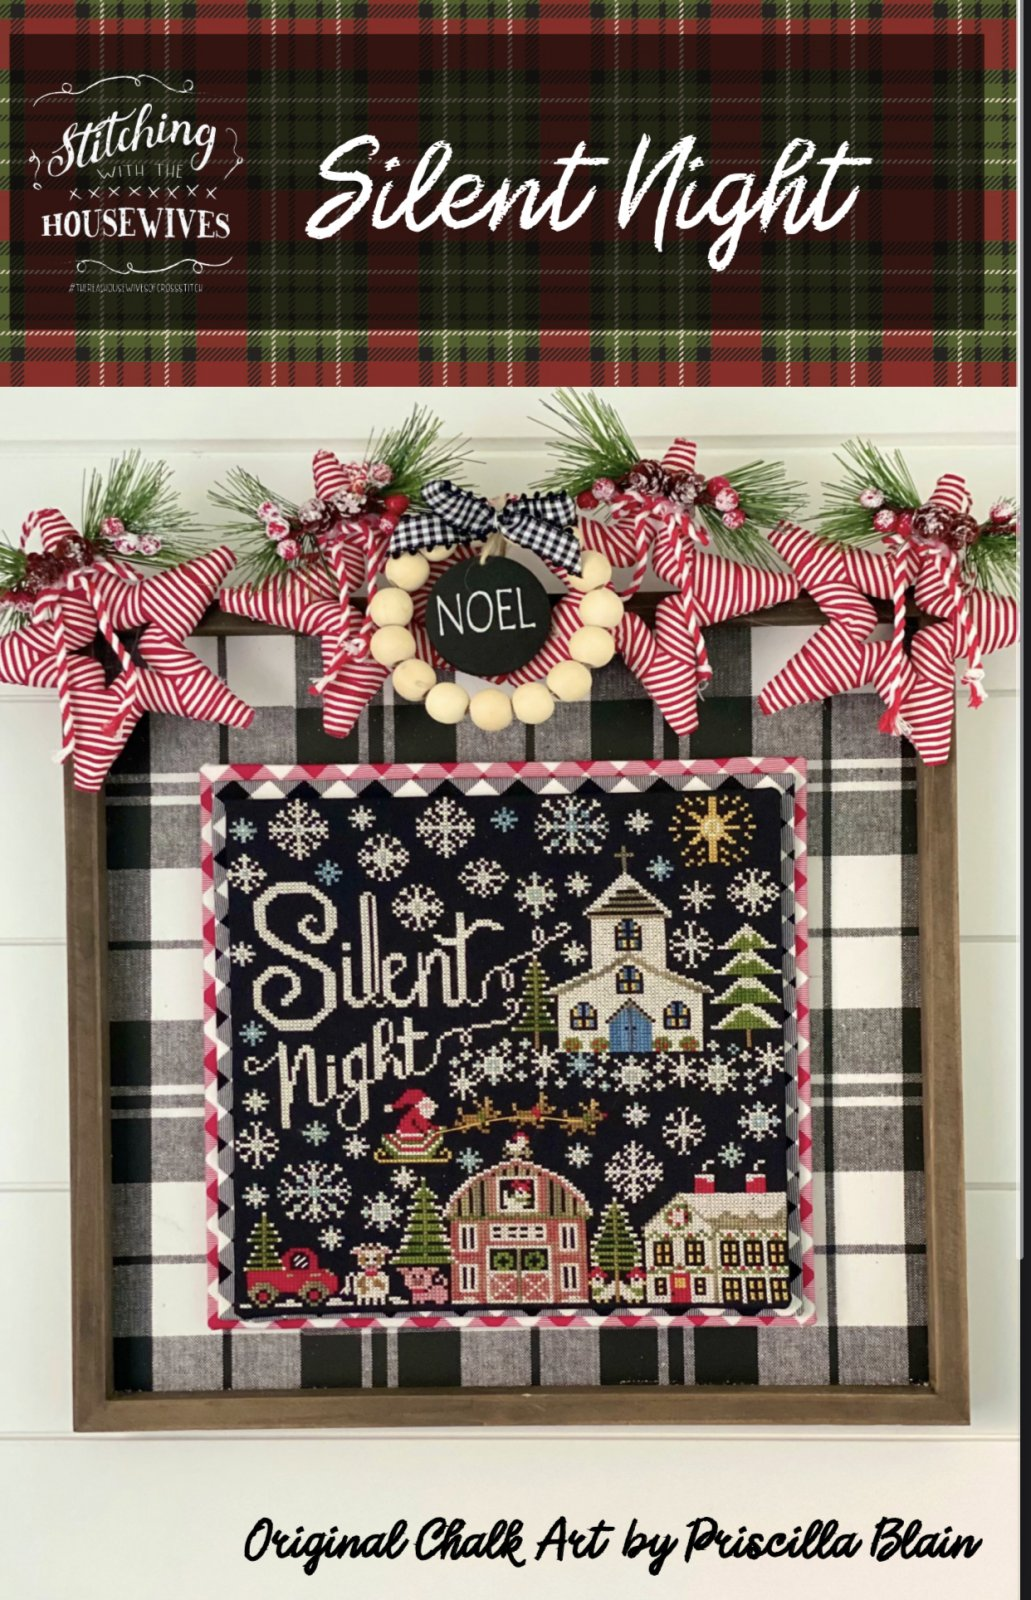 Silent Night by Stitching with the Housewives - Counted Cross Stitch Pattern